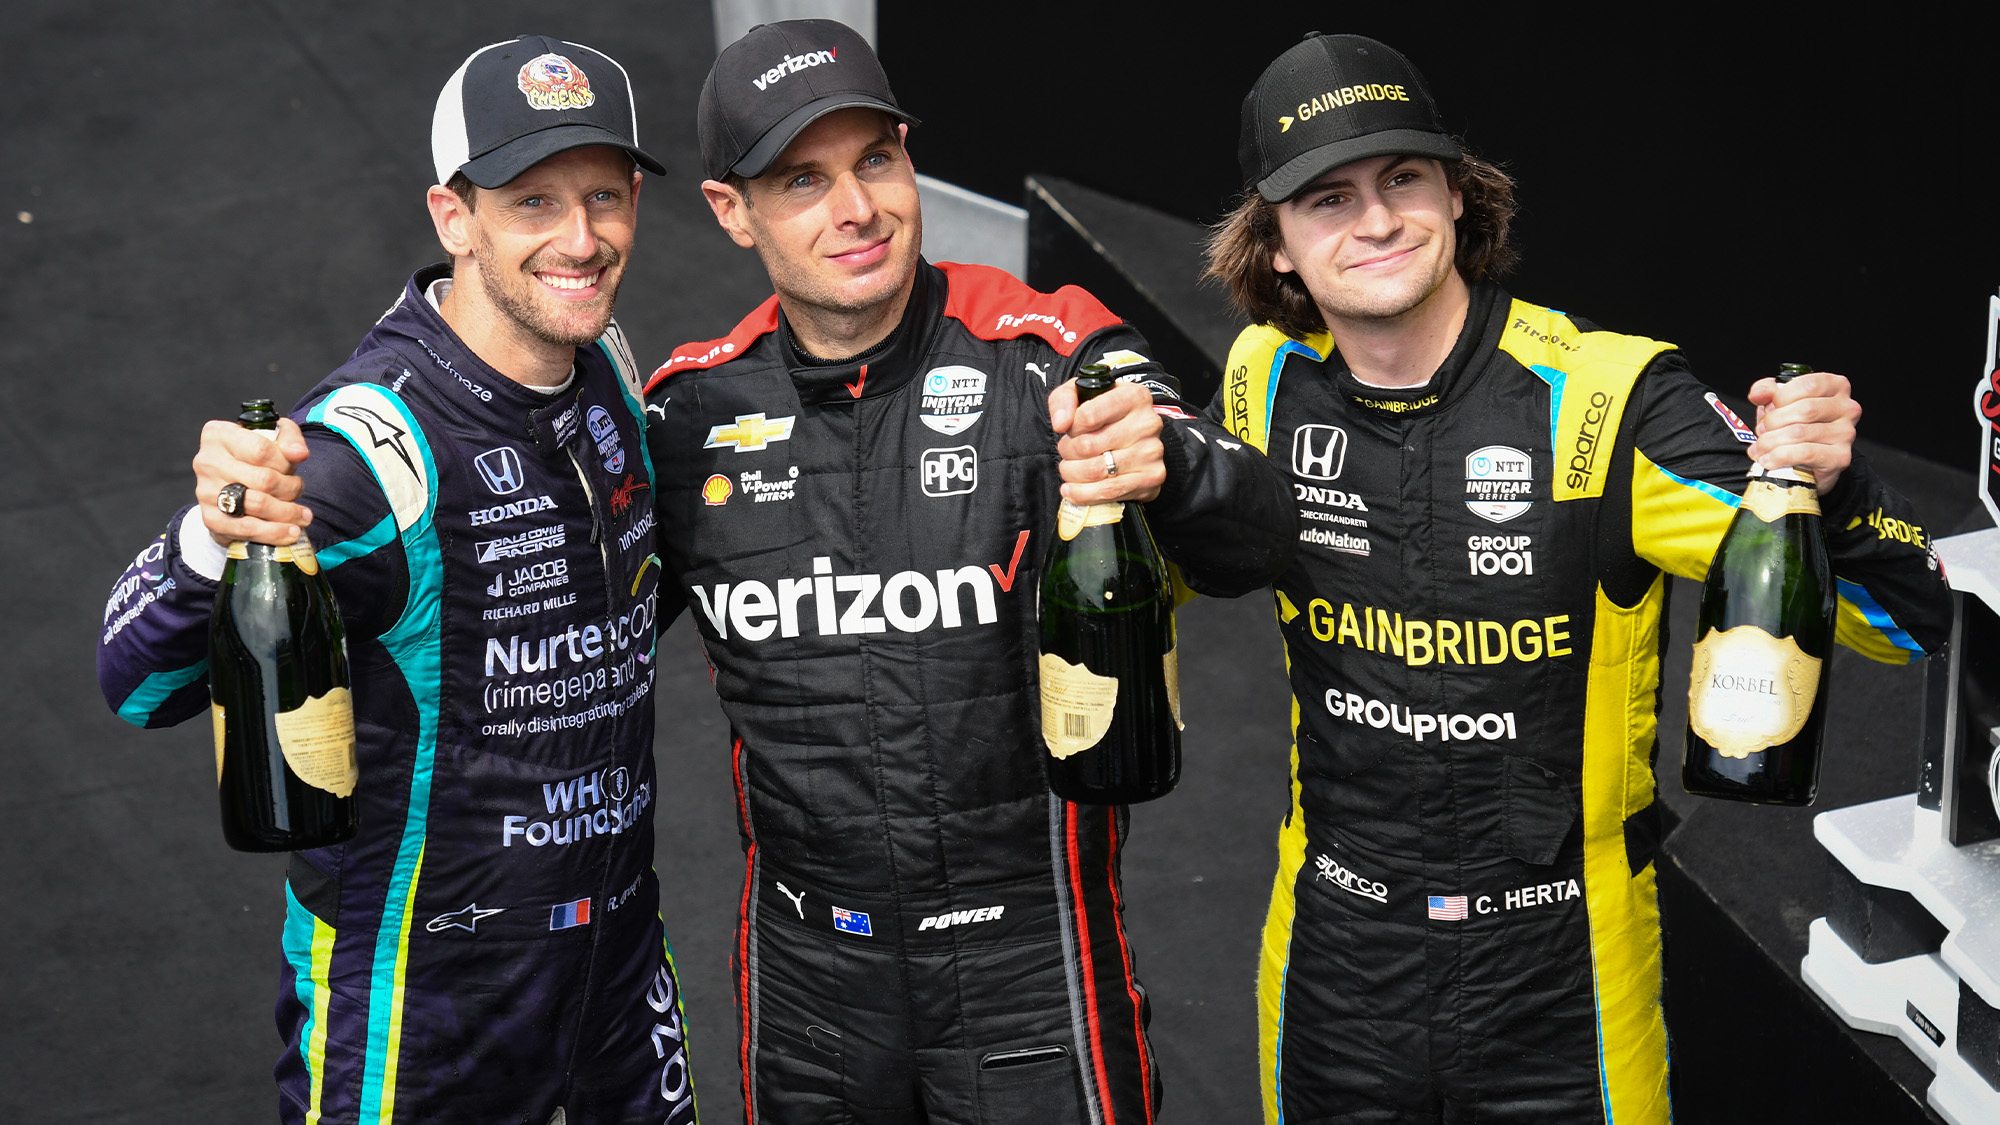 Romain Grosjean with Will Power and Colton Herta after 2021 Indianapolis road course GP